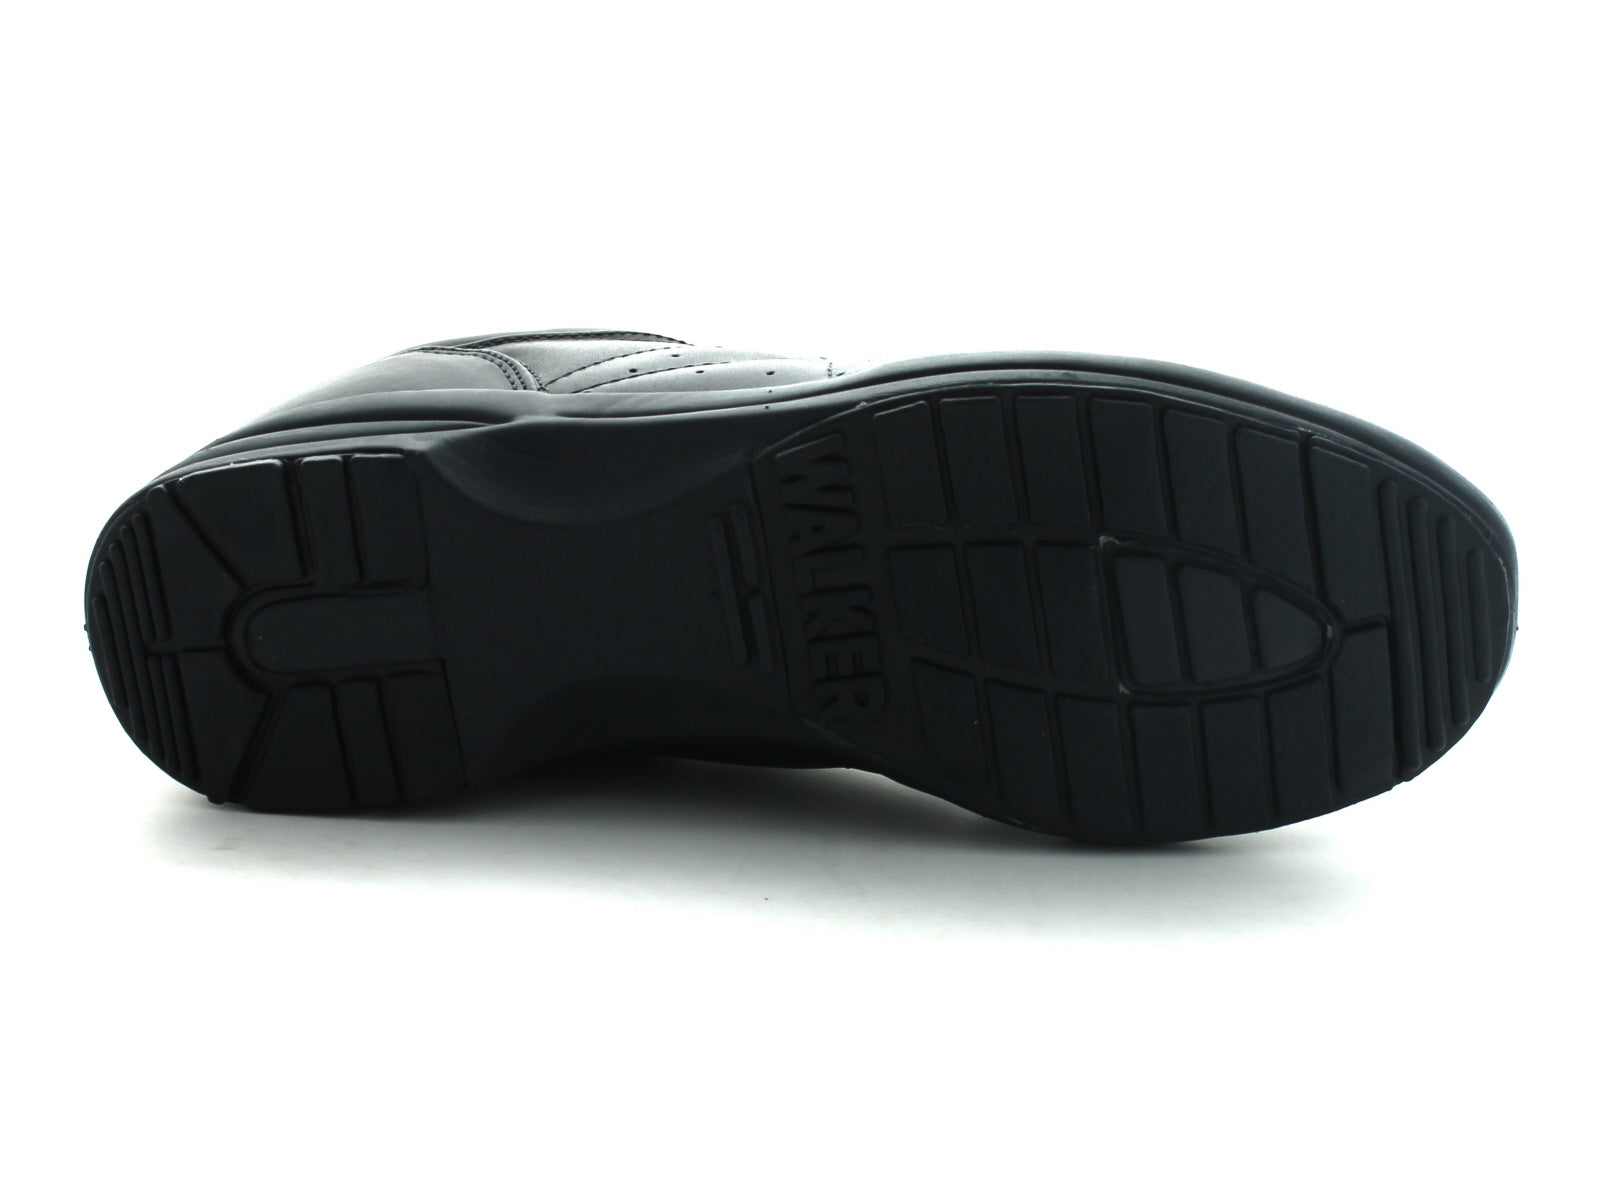 Propet W2840 in Black Leather sole view